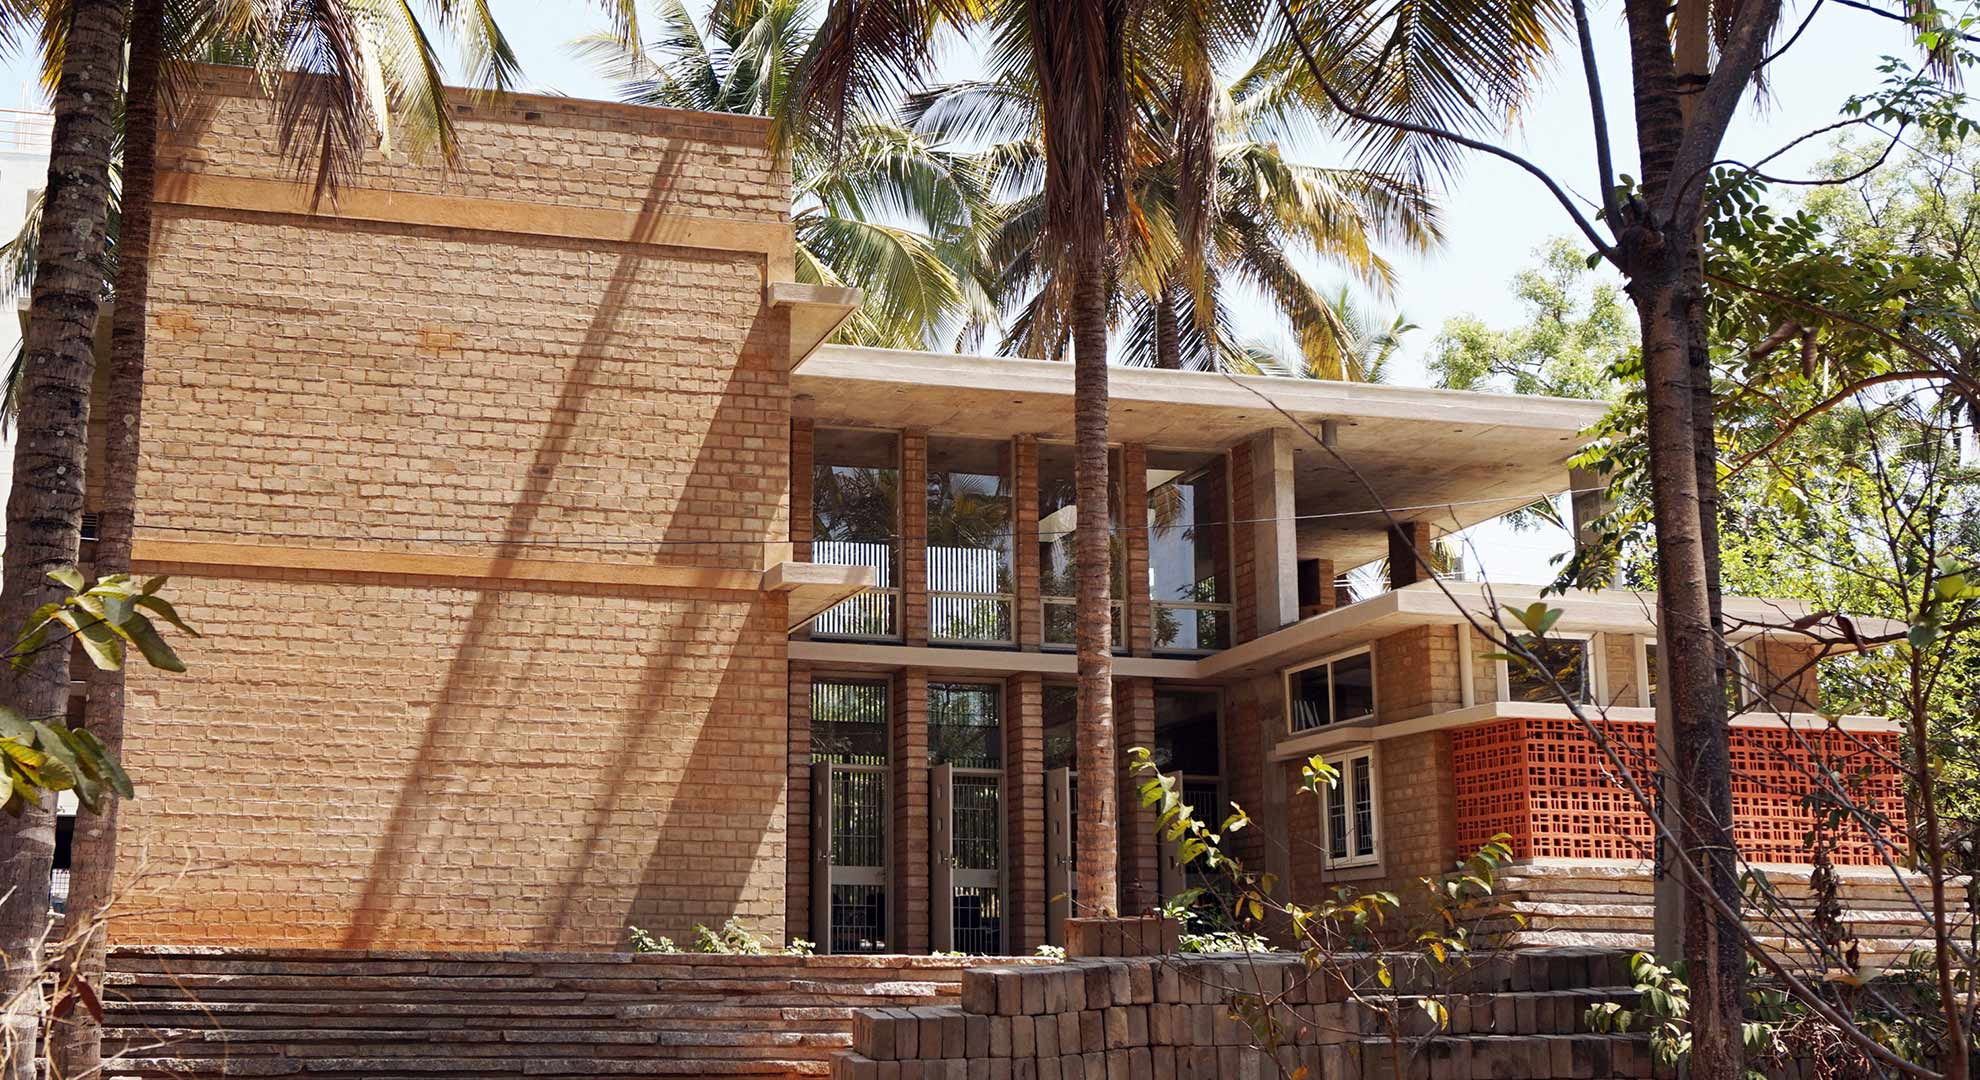 Architects Rashmi and Deepak Gupta constructed this example of traditional architecture in Bengaluru.